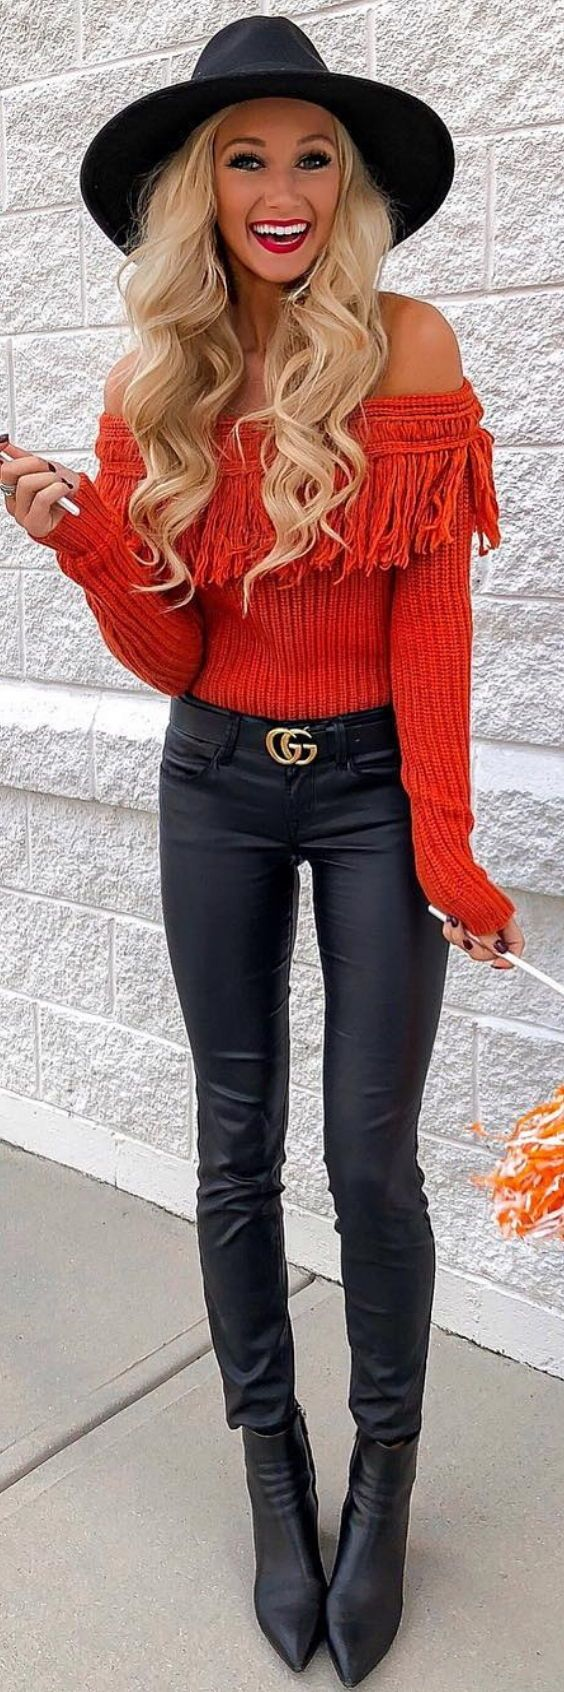 4e336dd17f16 Autumn Trends 2018 – All The Key Looks To Know  womensfashion  fall   streetstyle  outfitideas  autumn